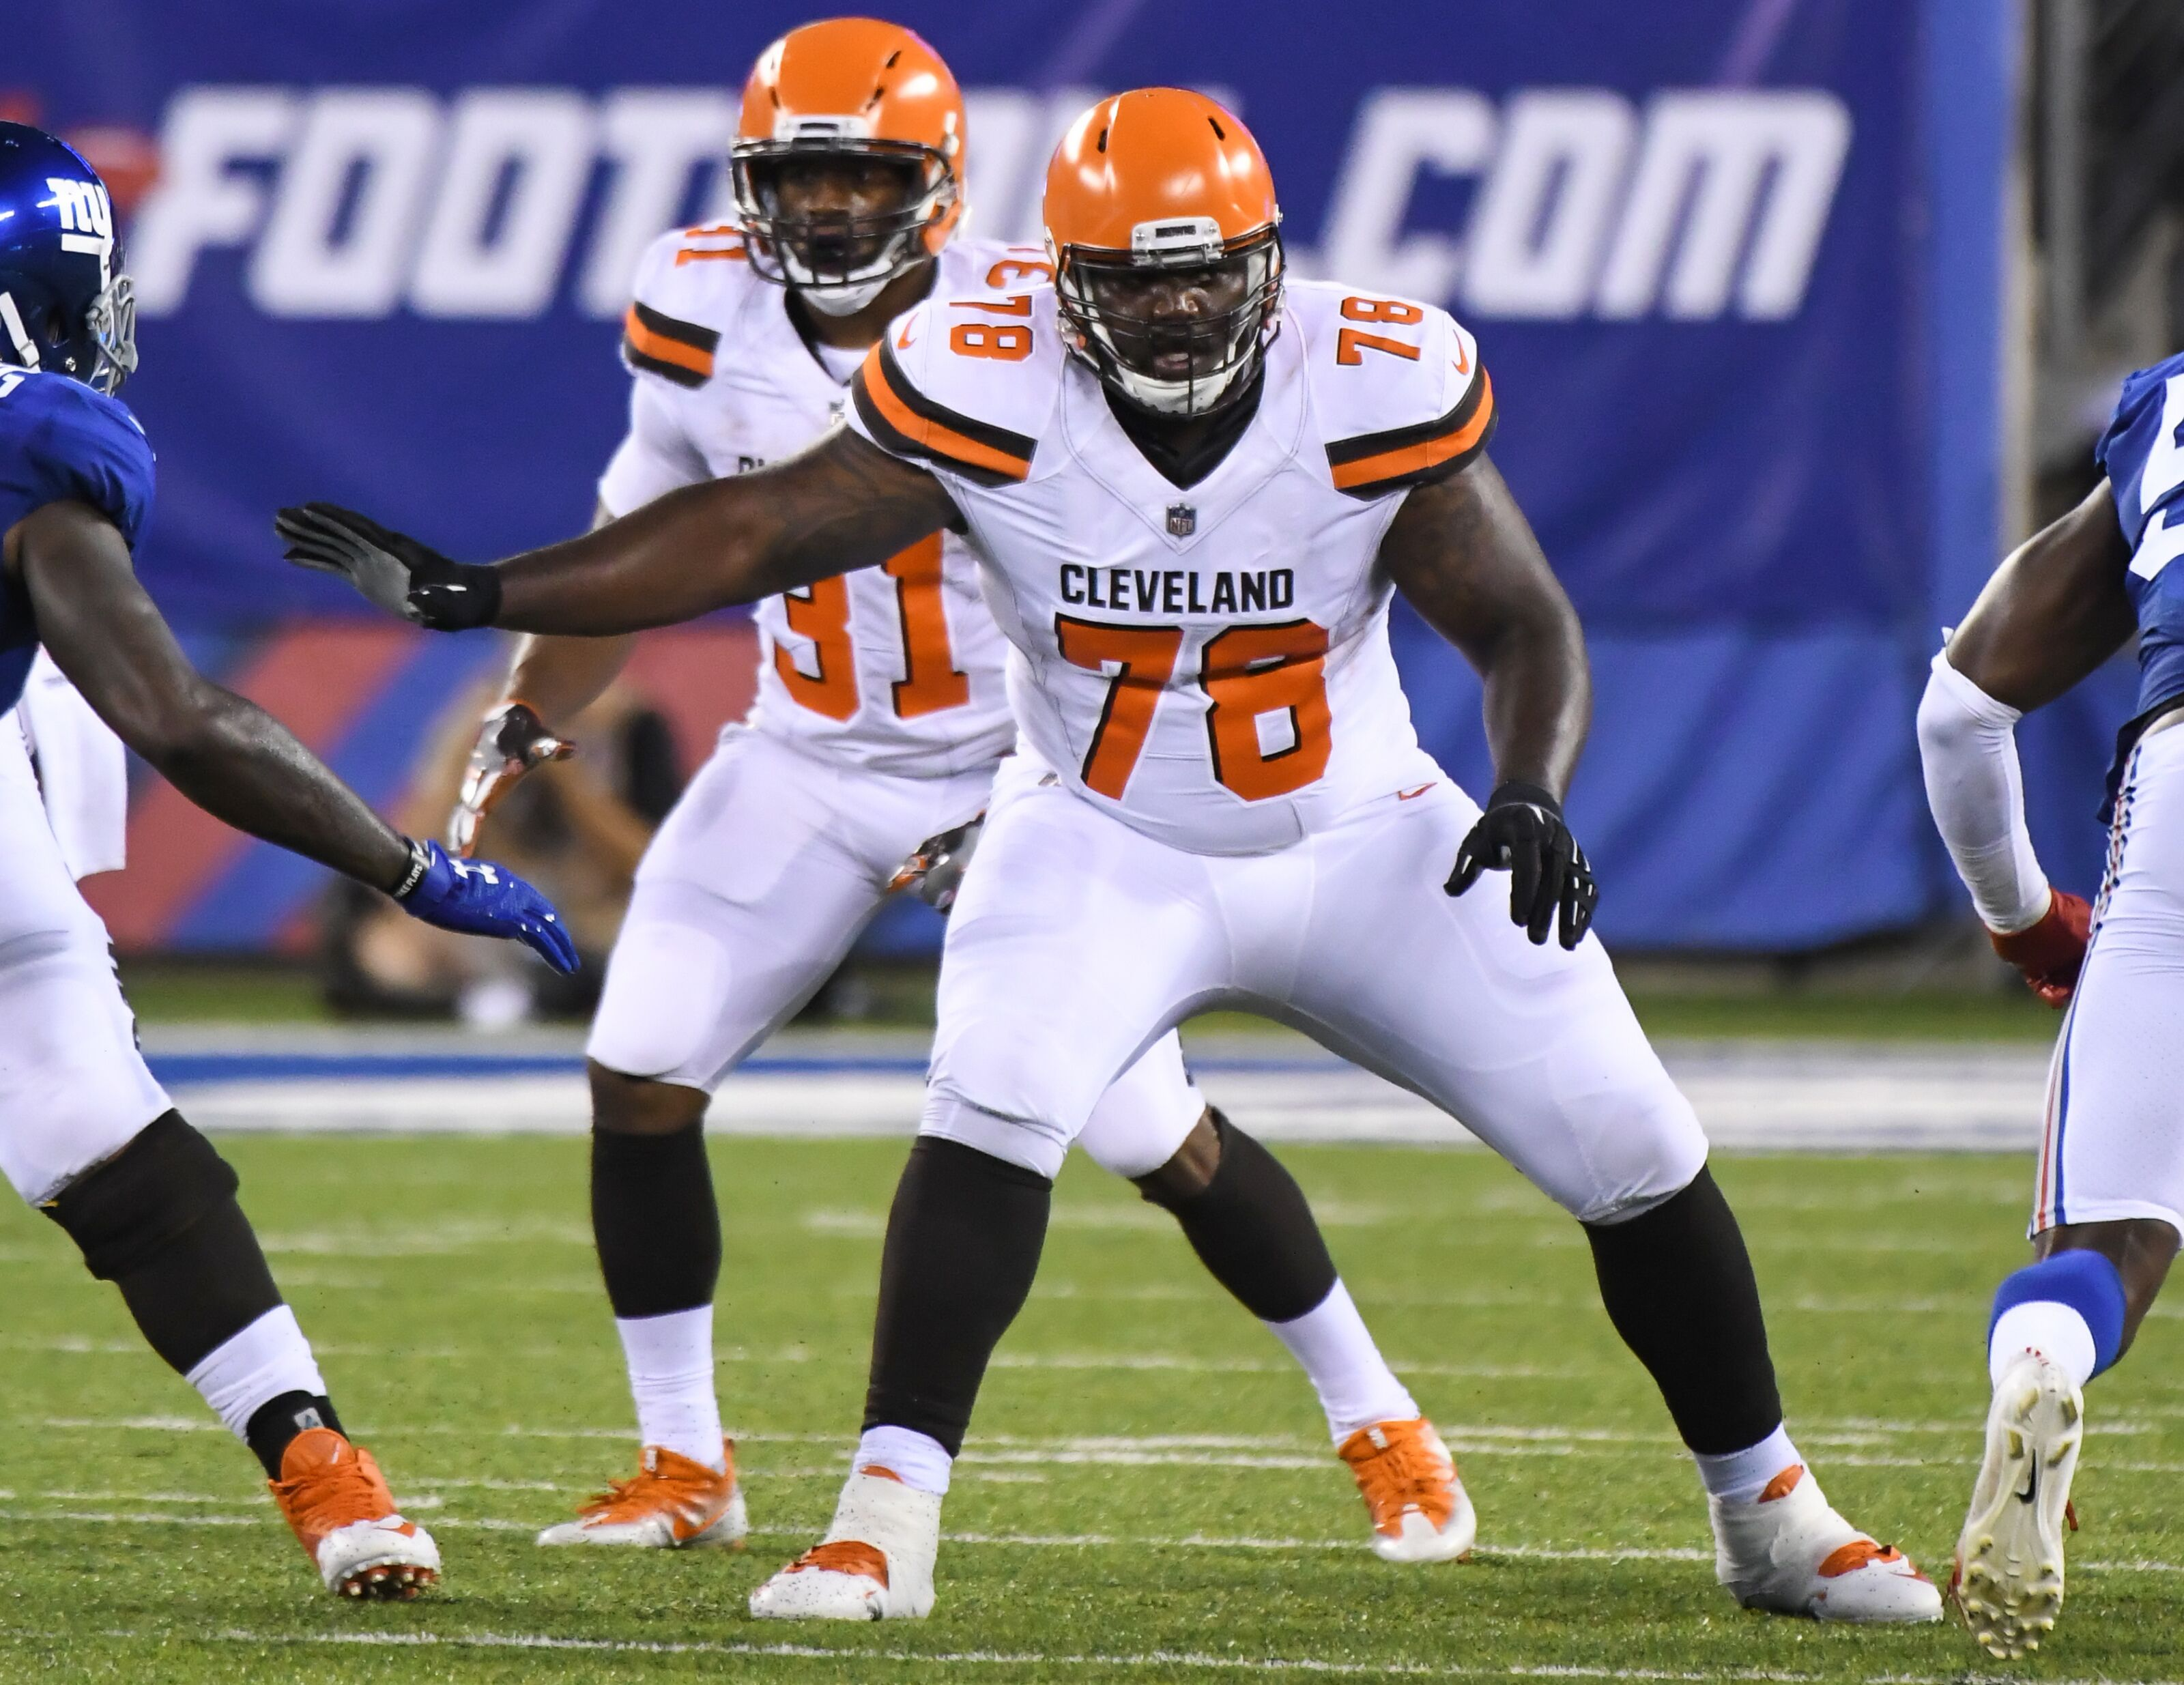 Greg Robinson has no idea what's going on (Video)